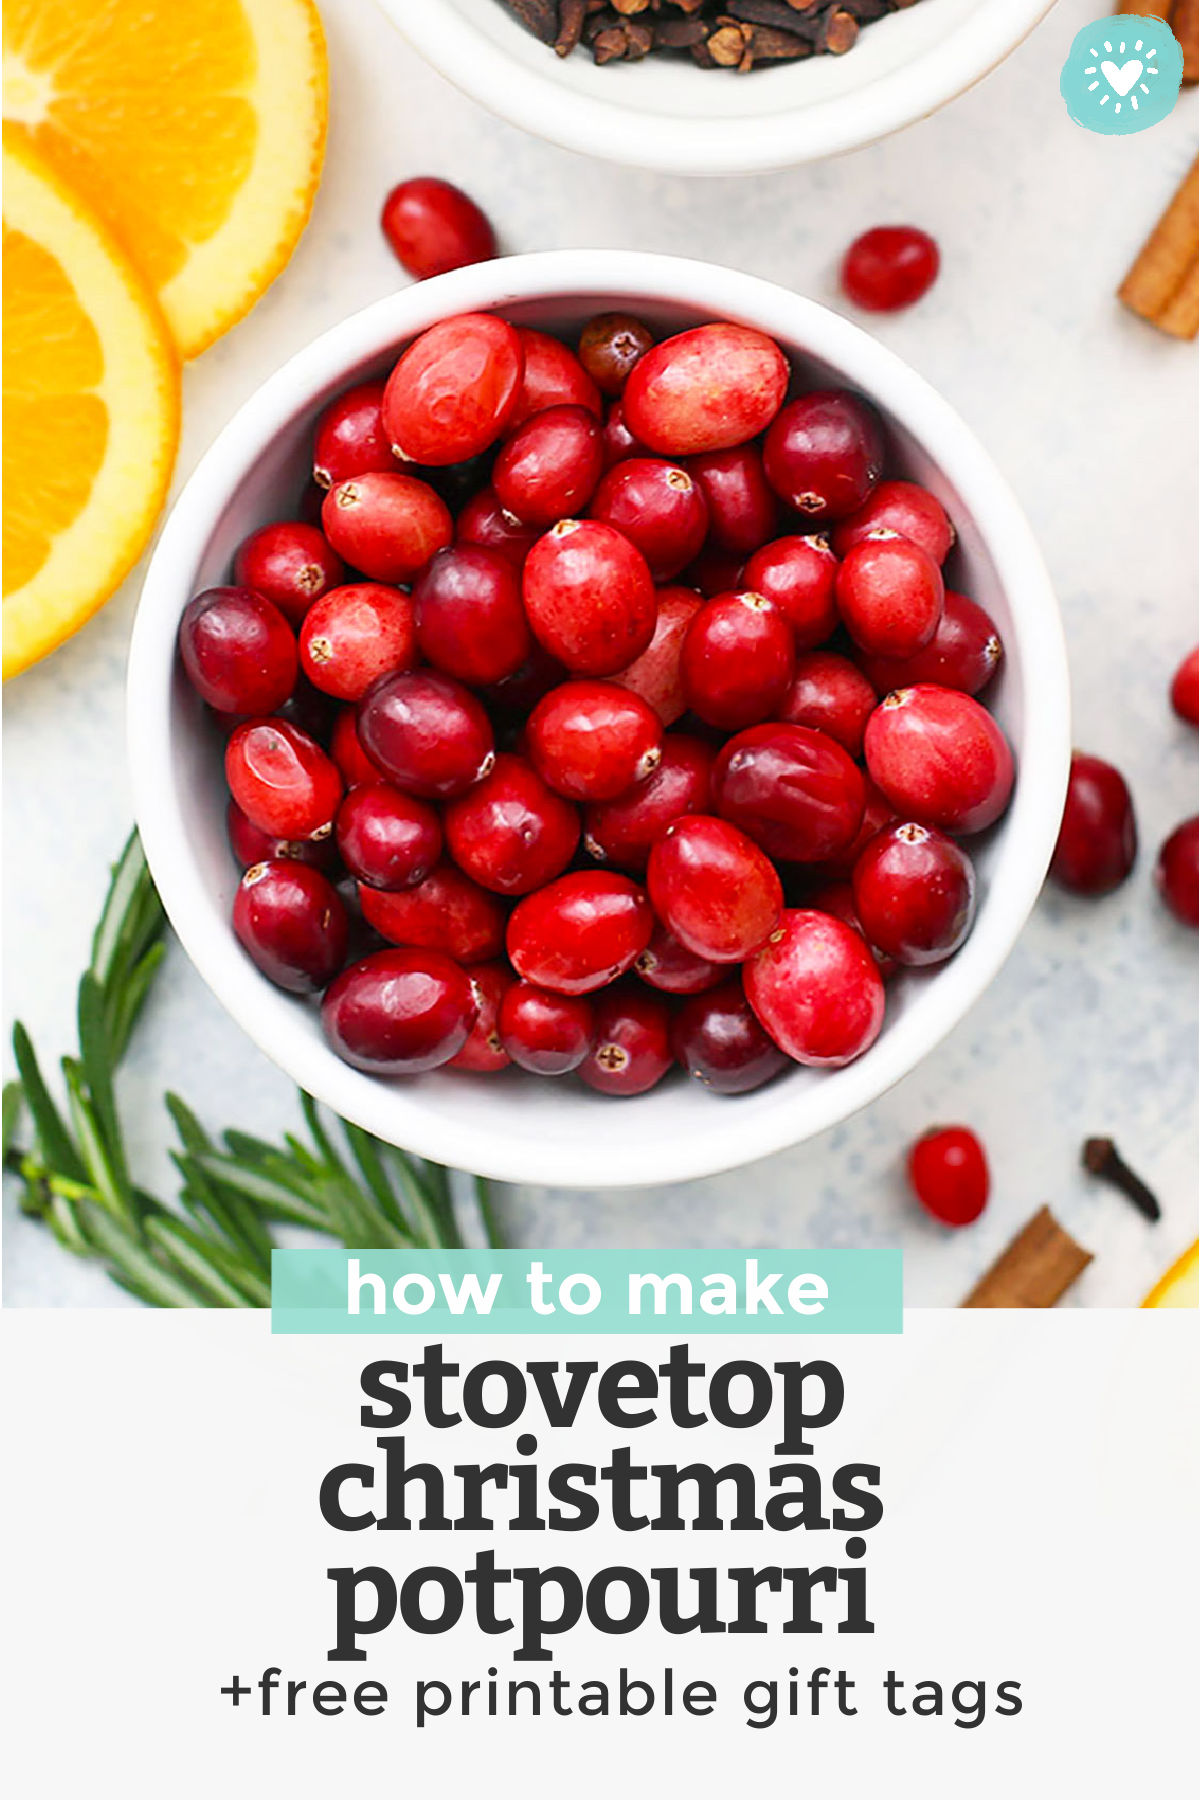 How To Make Stovetop Christmas Potpourri With Printable Gift Tags One Lovely Life